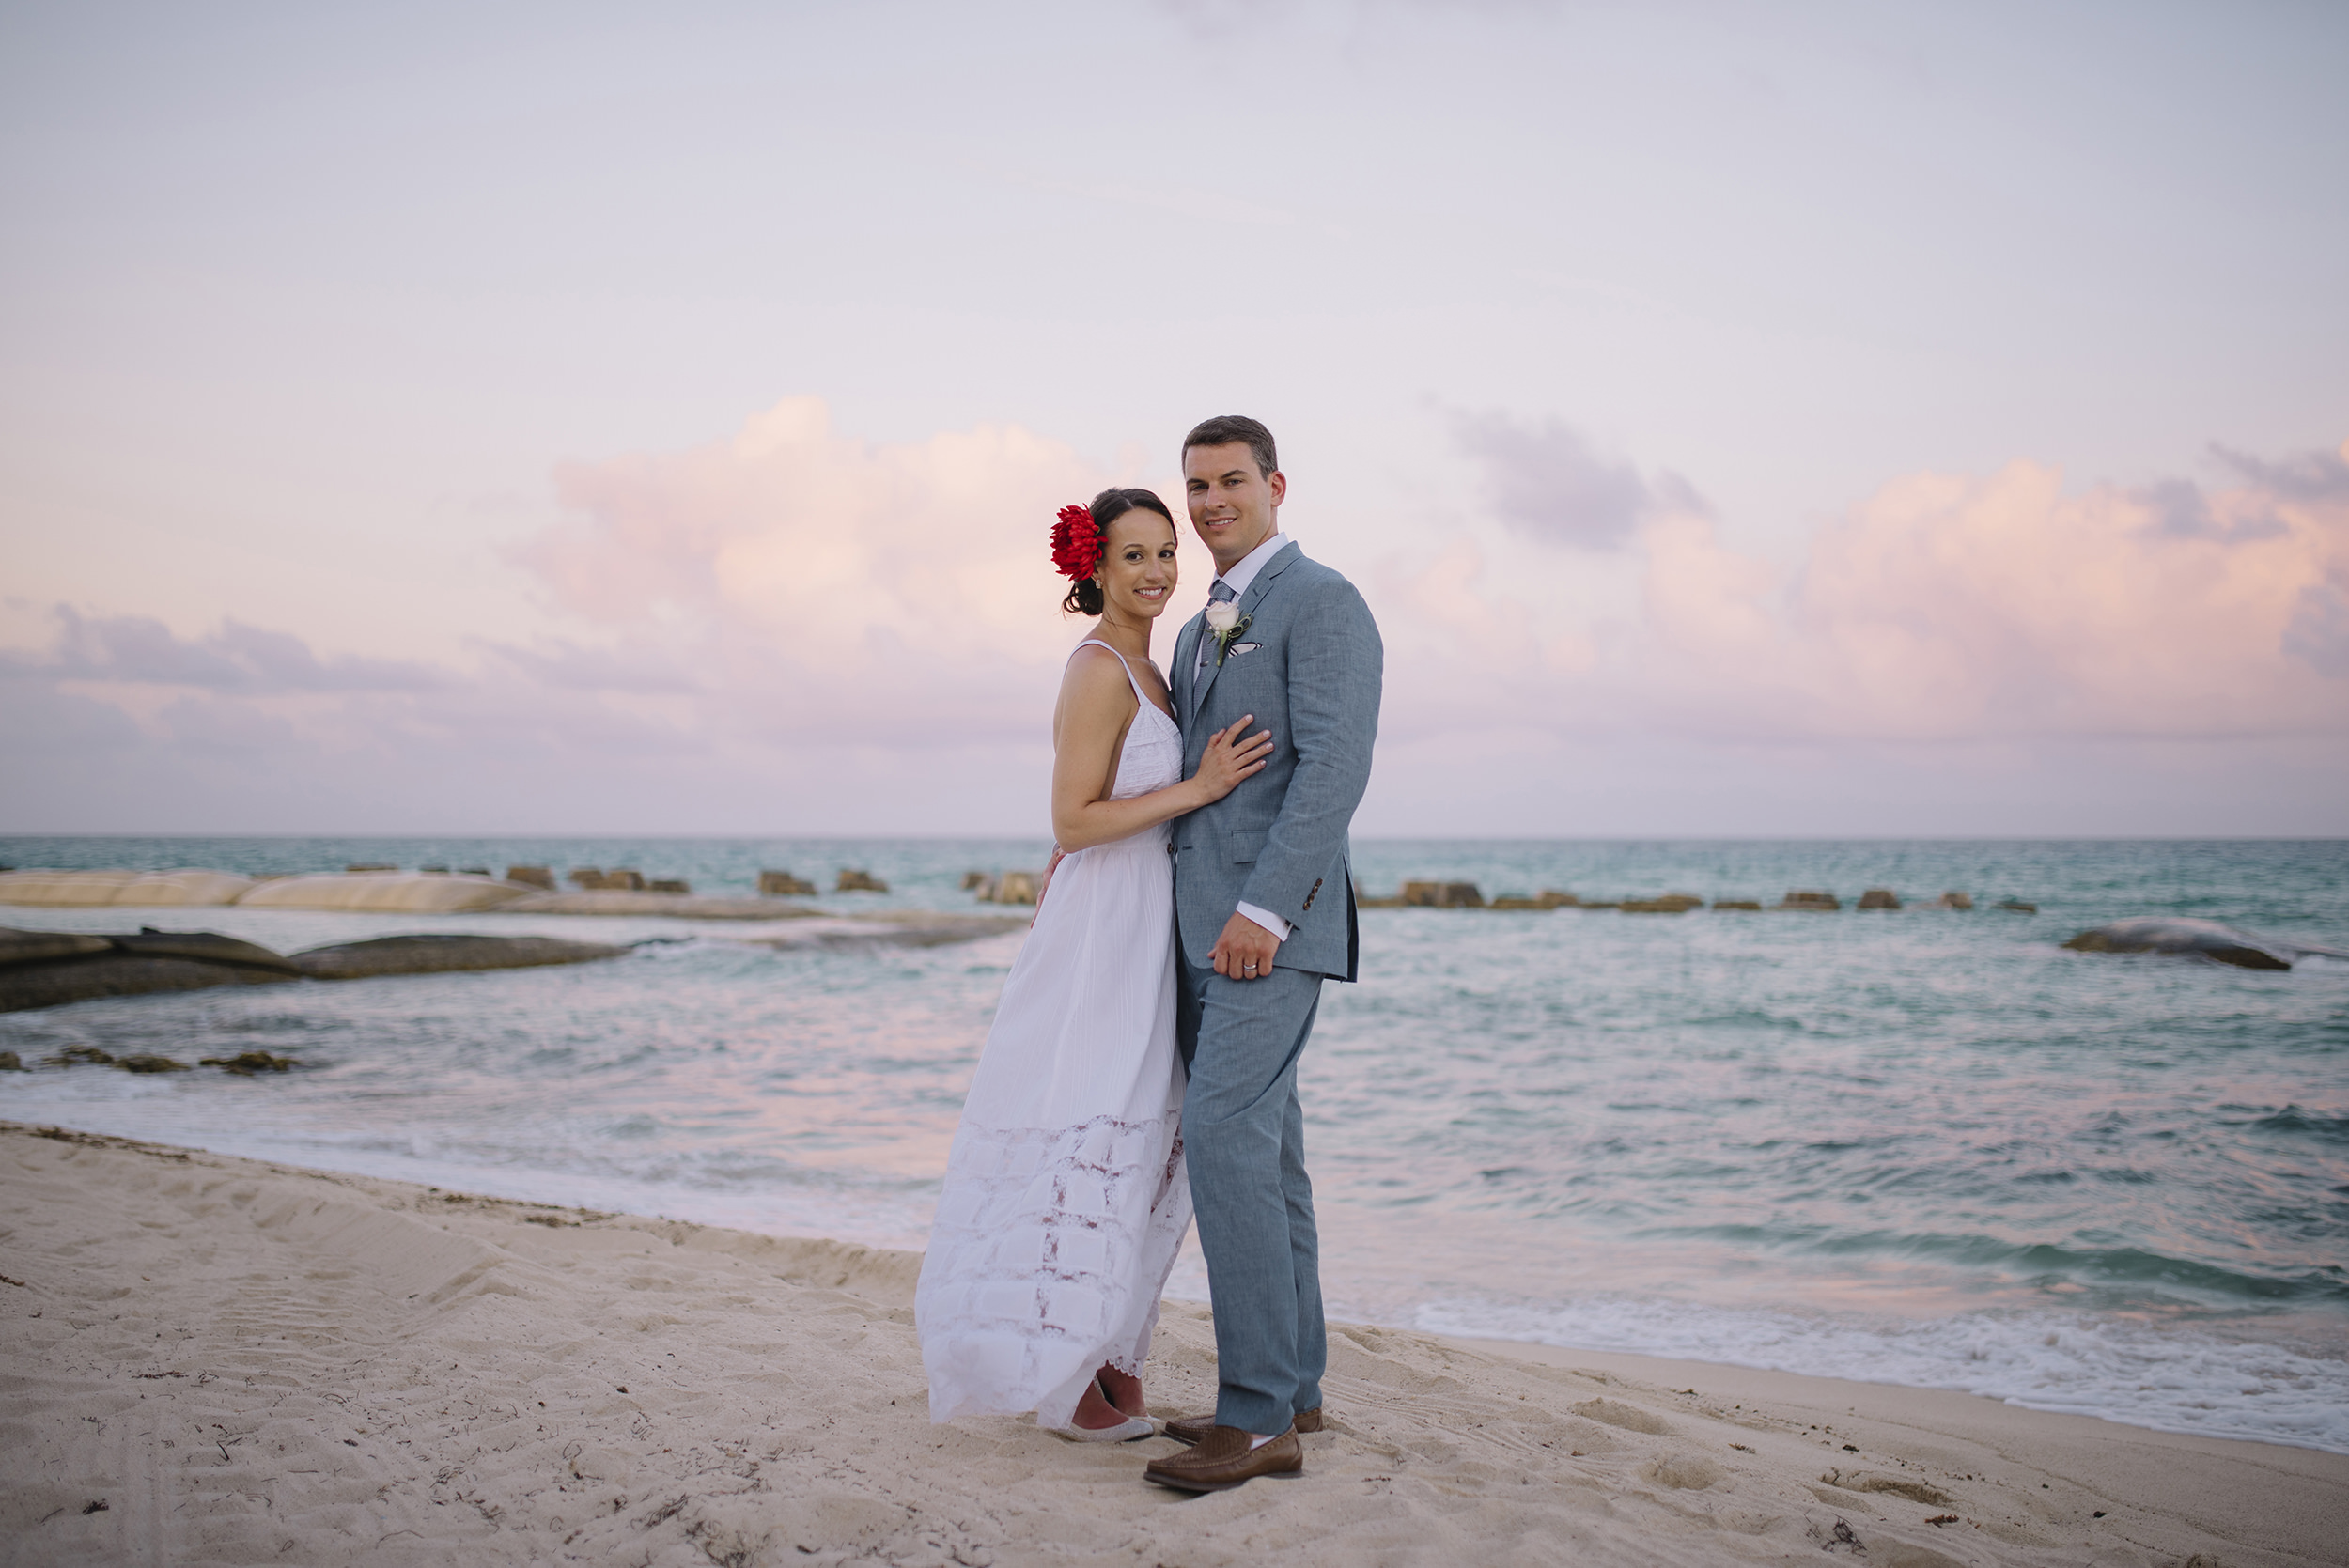 Colby-and-Jess-Intimate-Beach-Wedding-Destination-Cancun-Mexico138.jpg